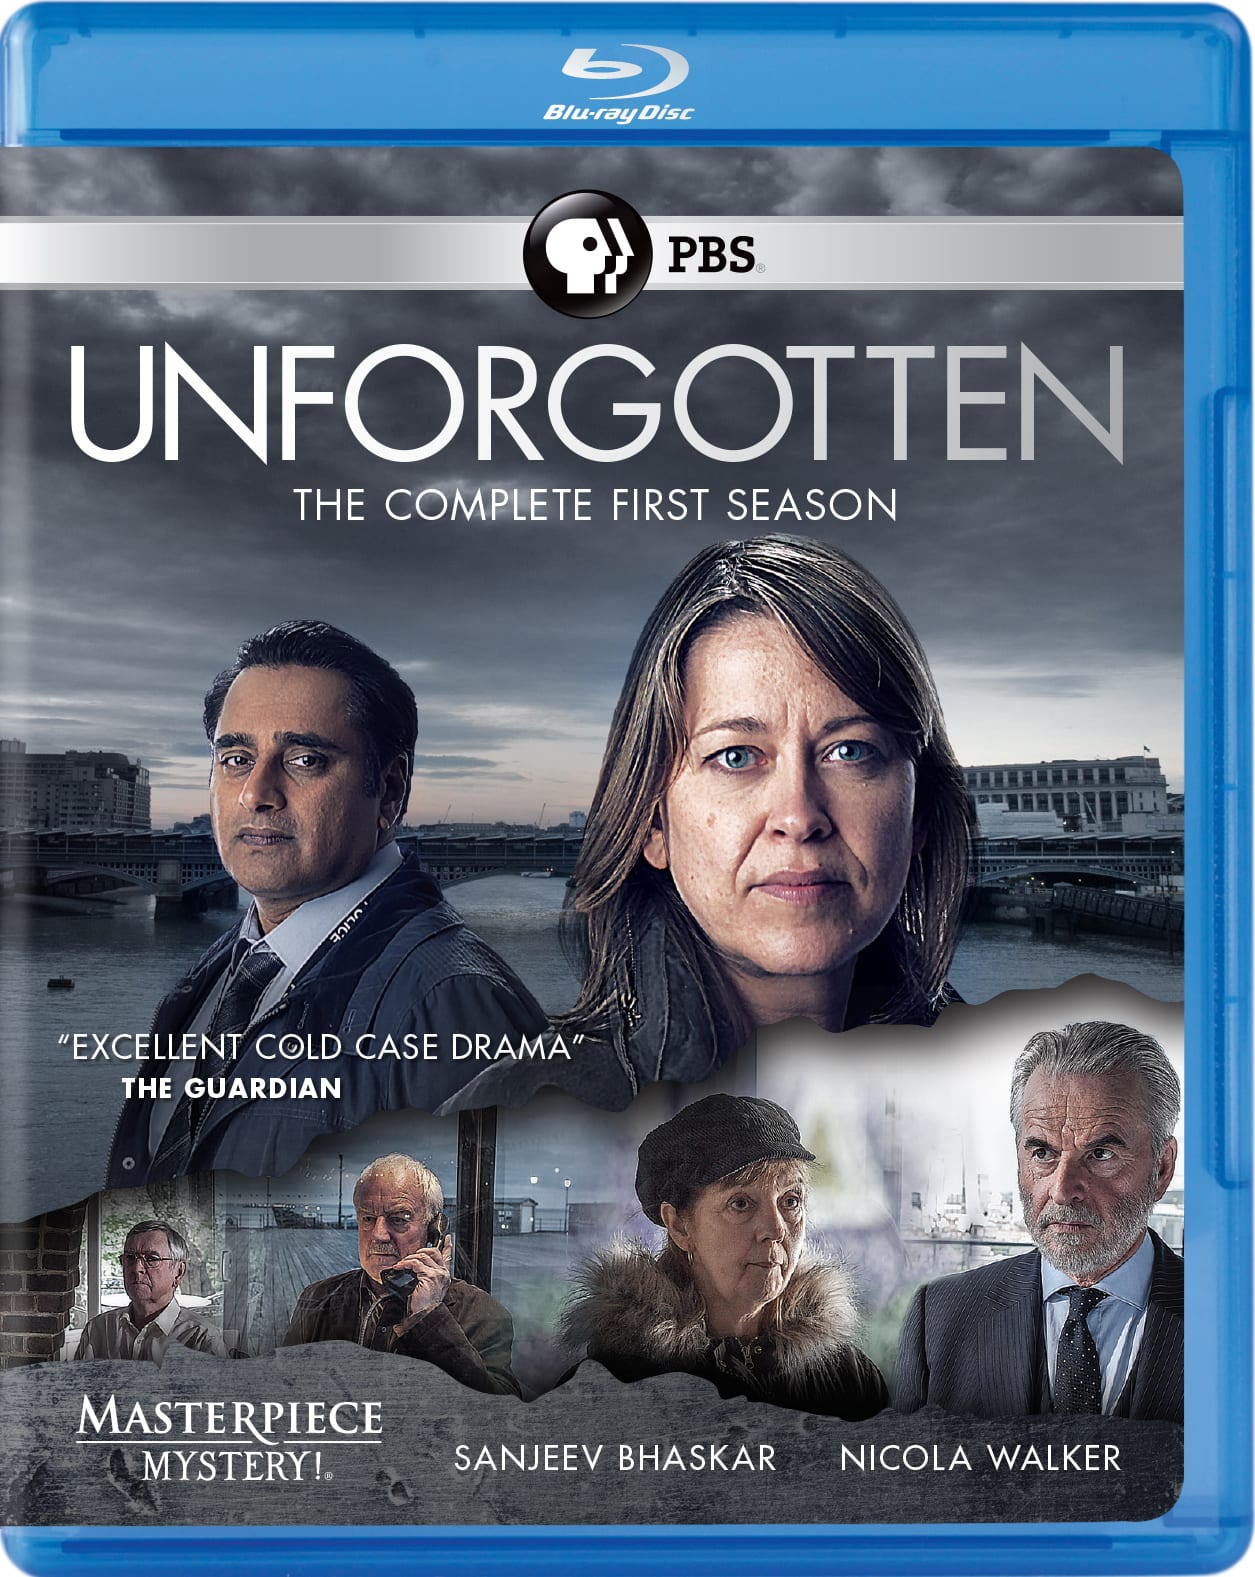 Masterpiece Mystery!: Unforgotten - The Complete First Season [Blu-ray]